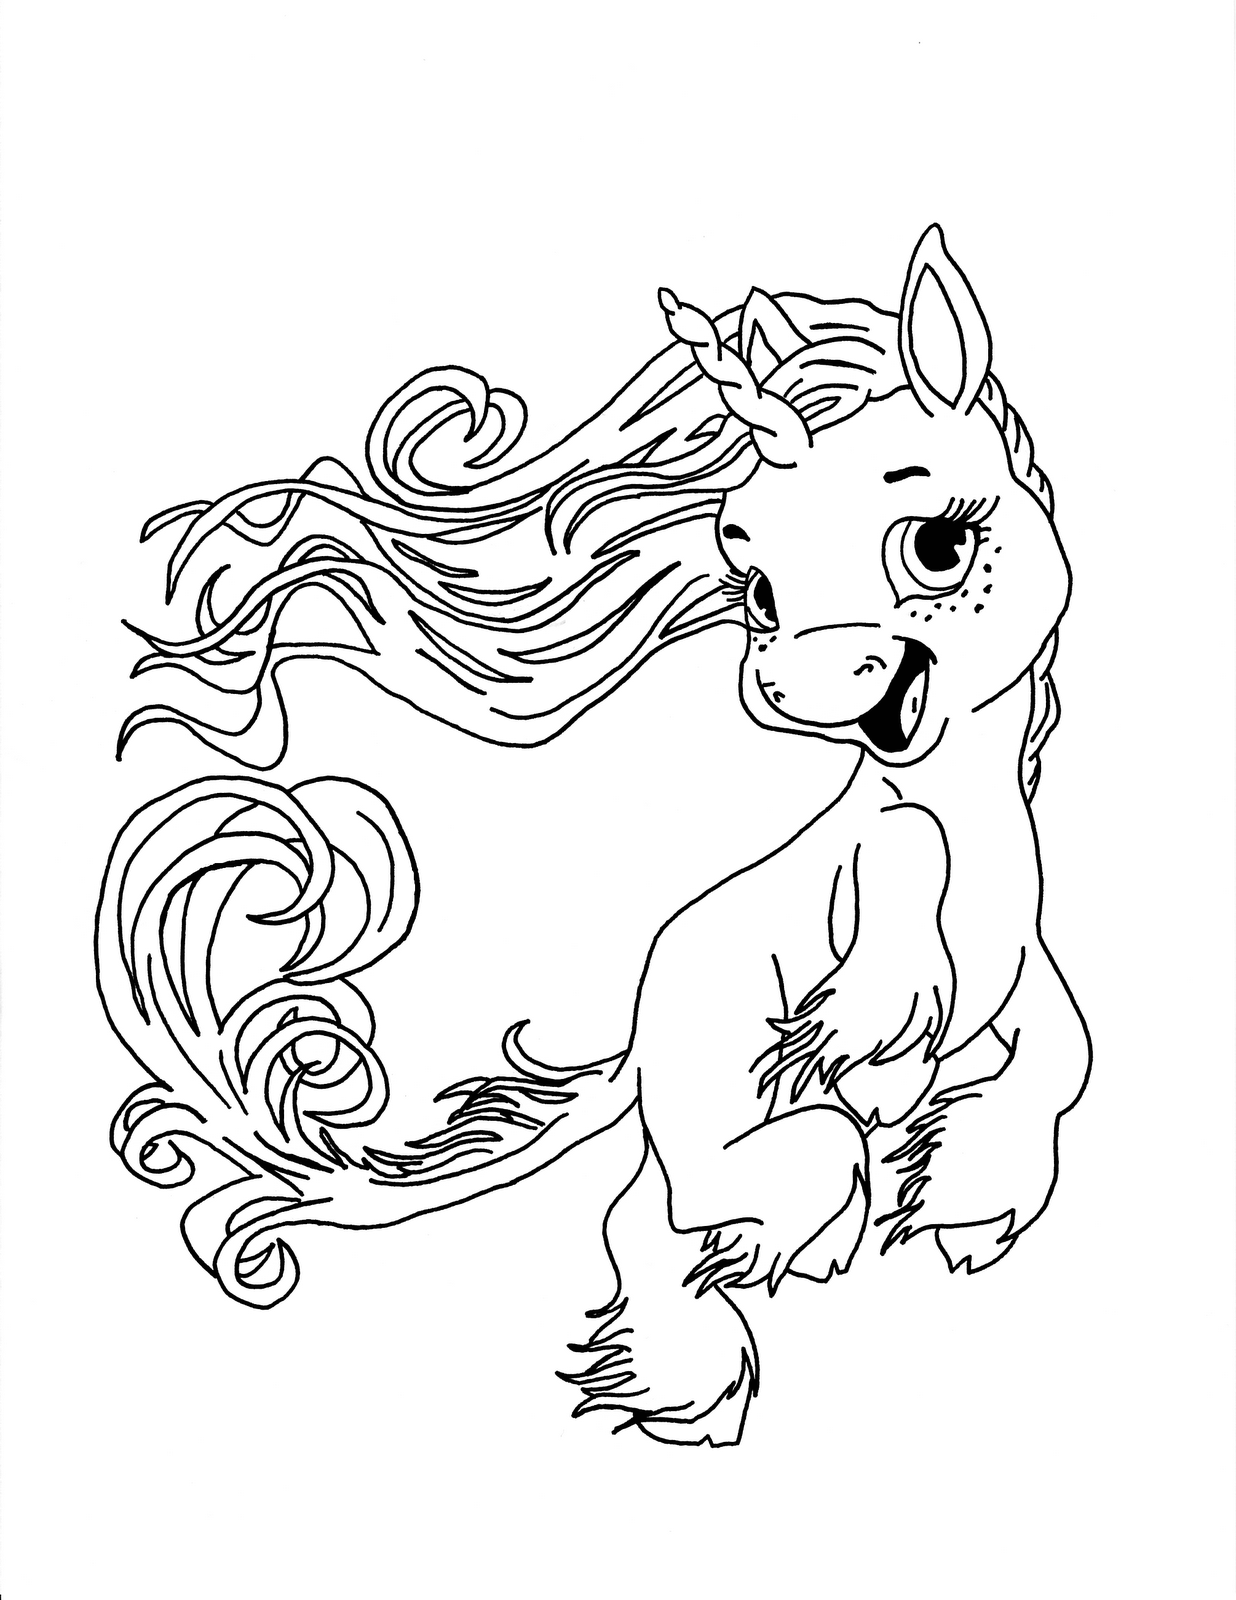 Baby Unicorn Coloring Pages Printable for Kids Pictures ... | 1600x1236